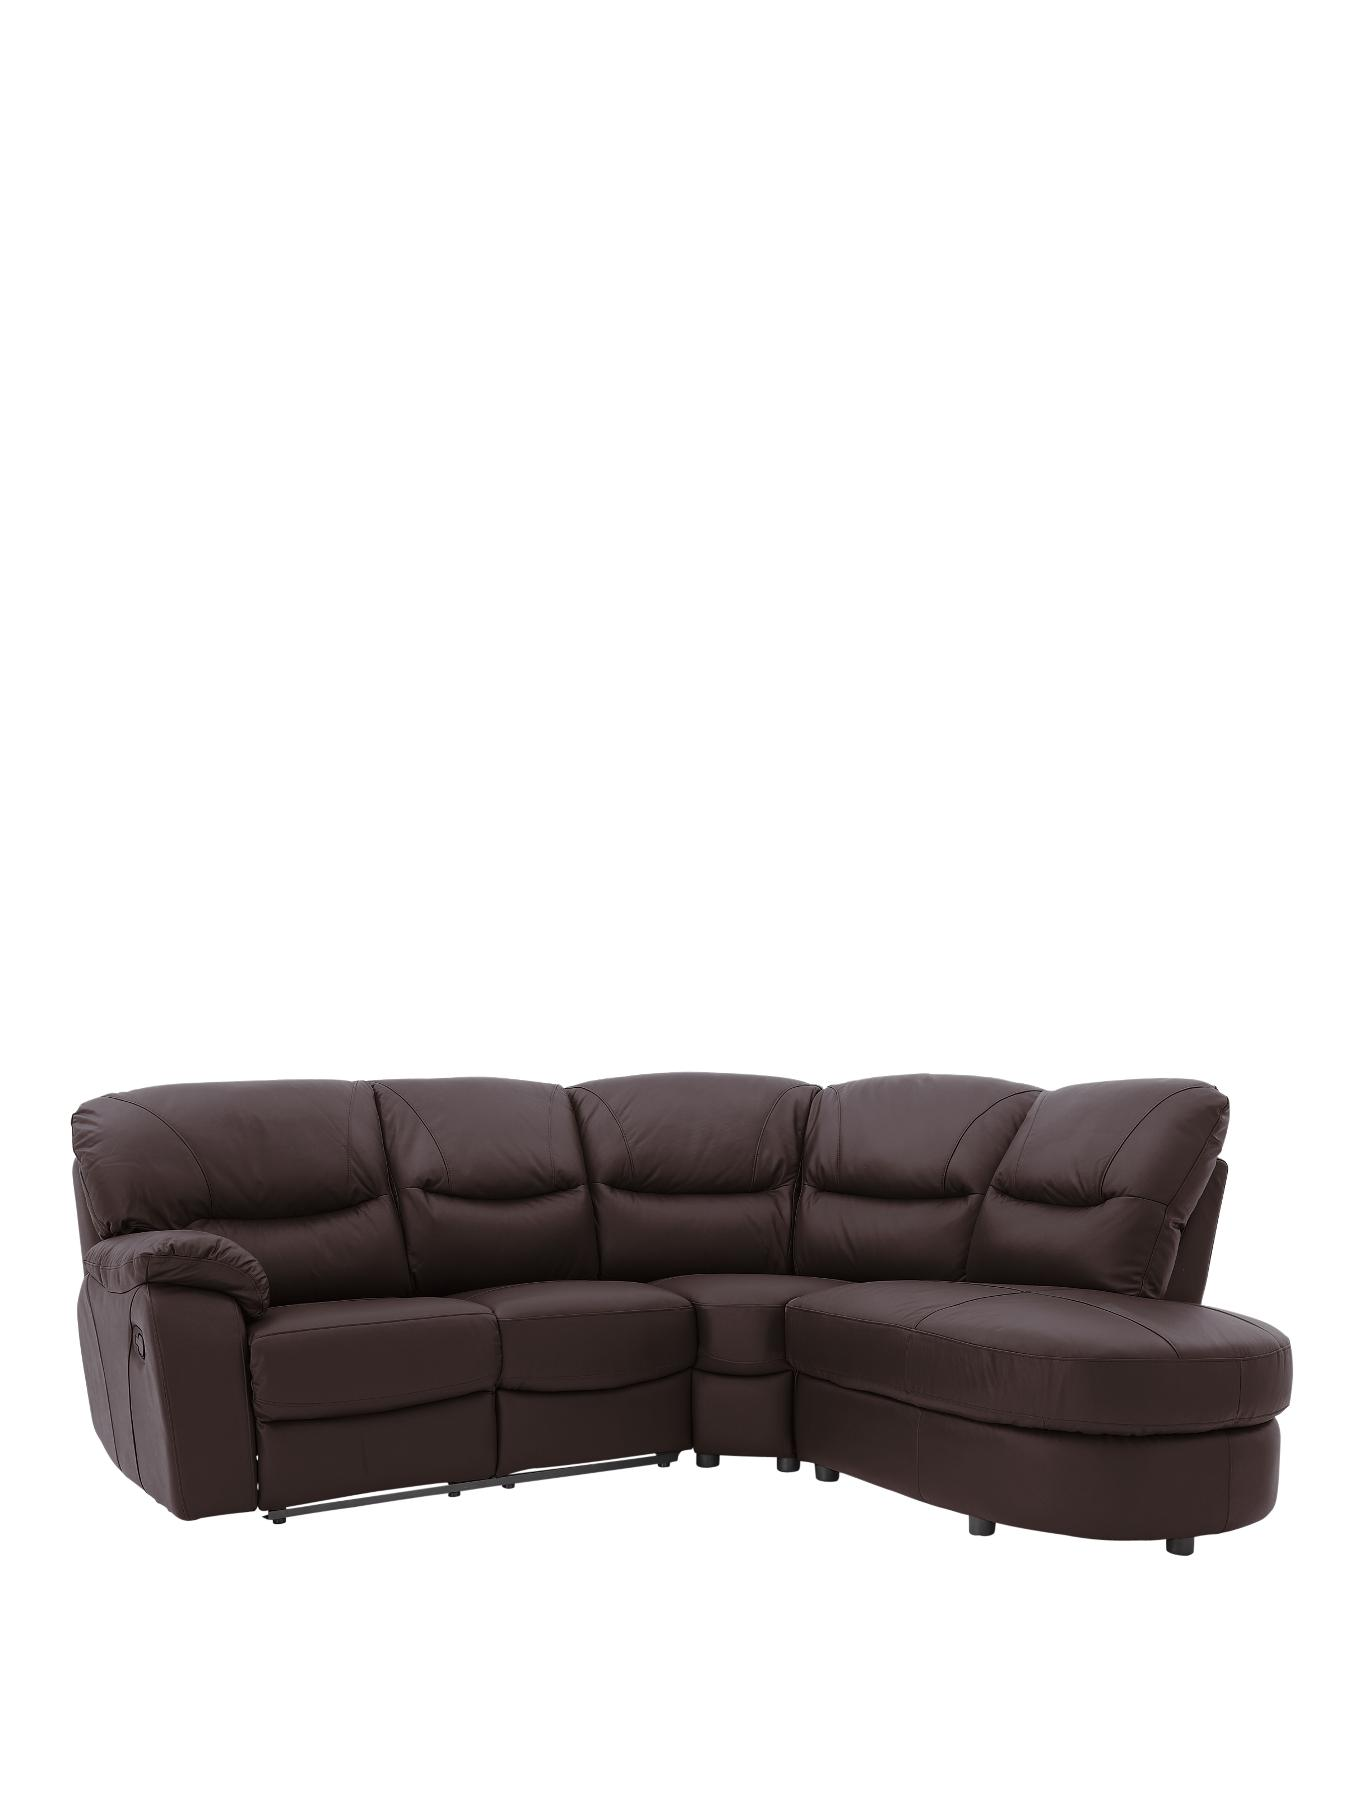 Oakland Righthand Reclining Leather Corner Group BlackRedChocolate